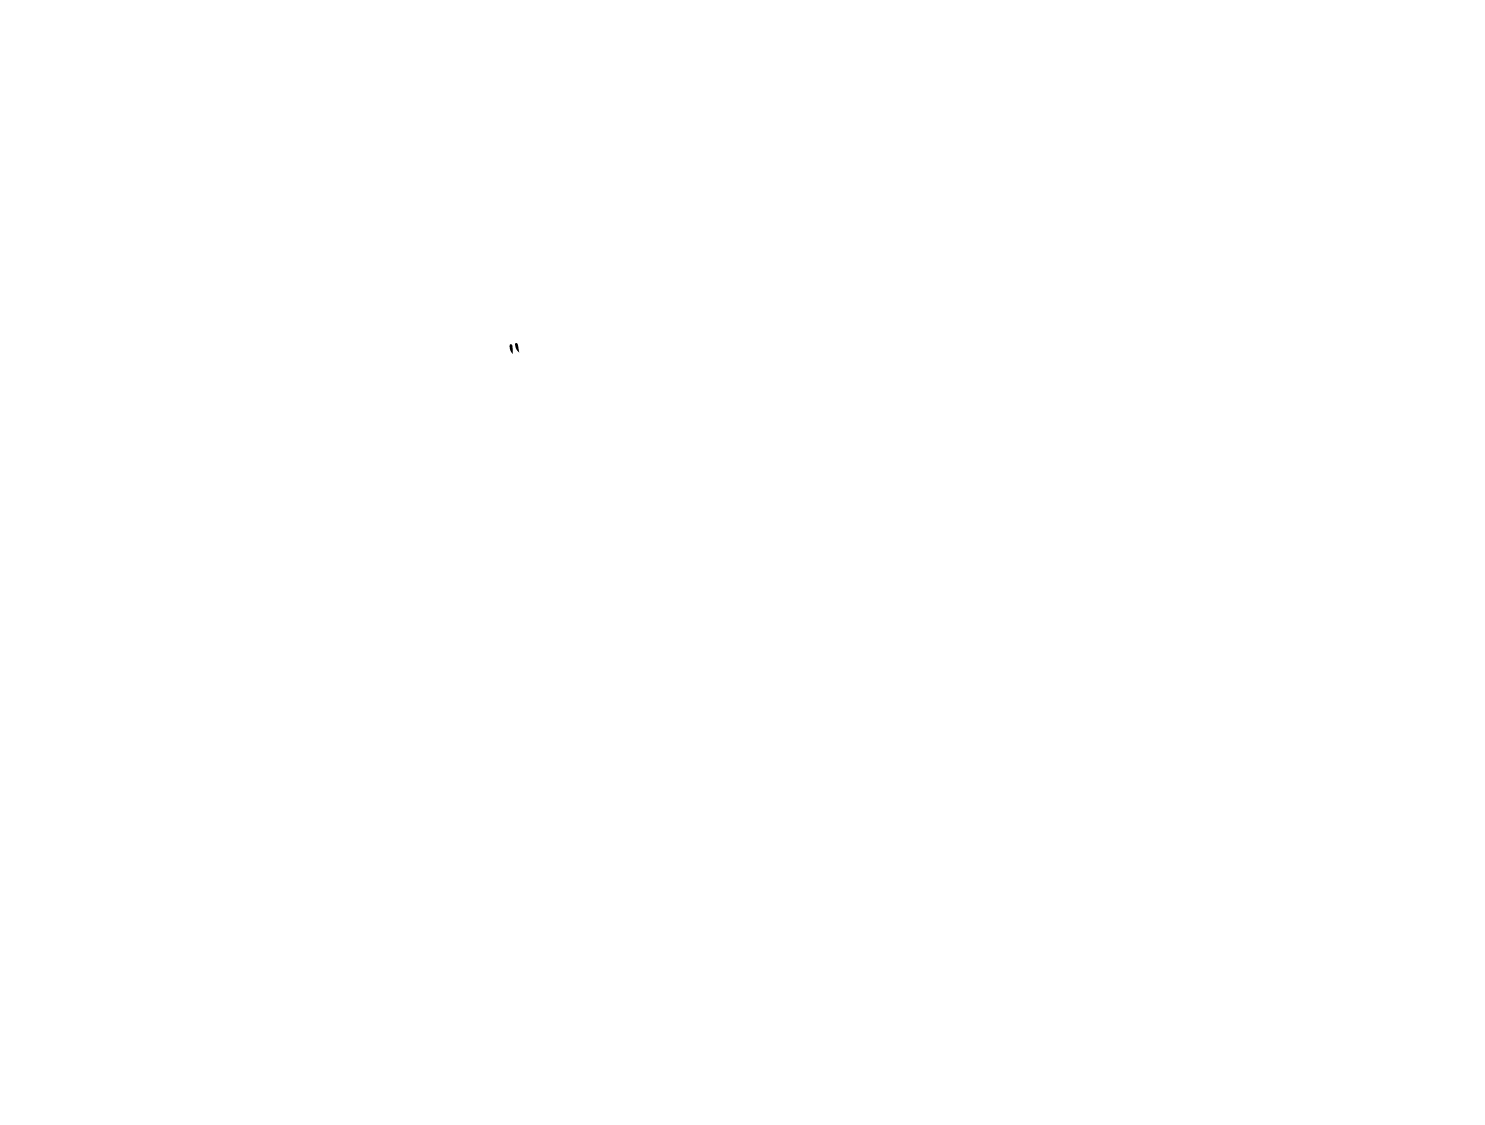 Flying Pig Adventure Company